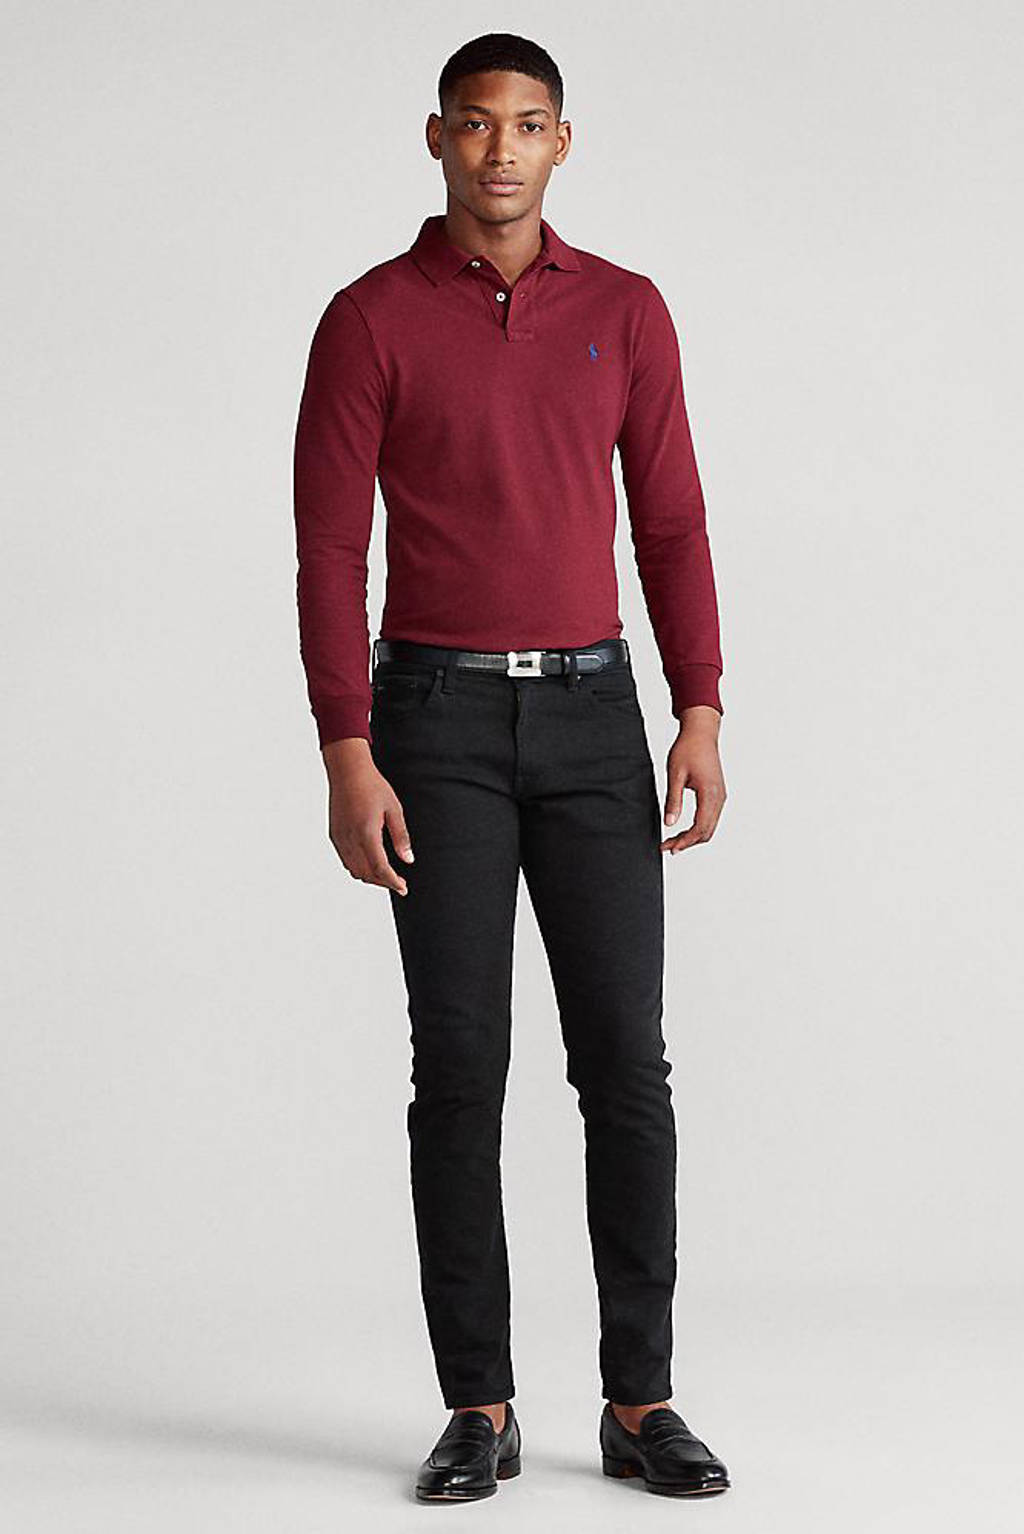 POLO Ralph Lauren slim fit polo donkerrood, Donkerrood